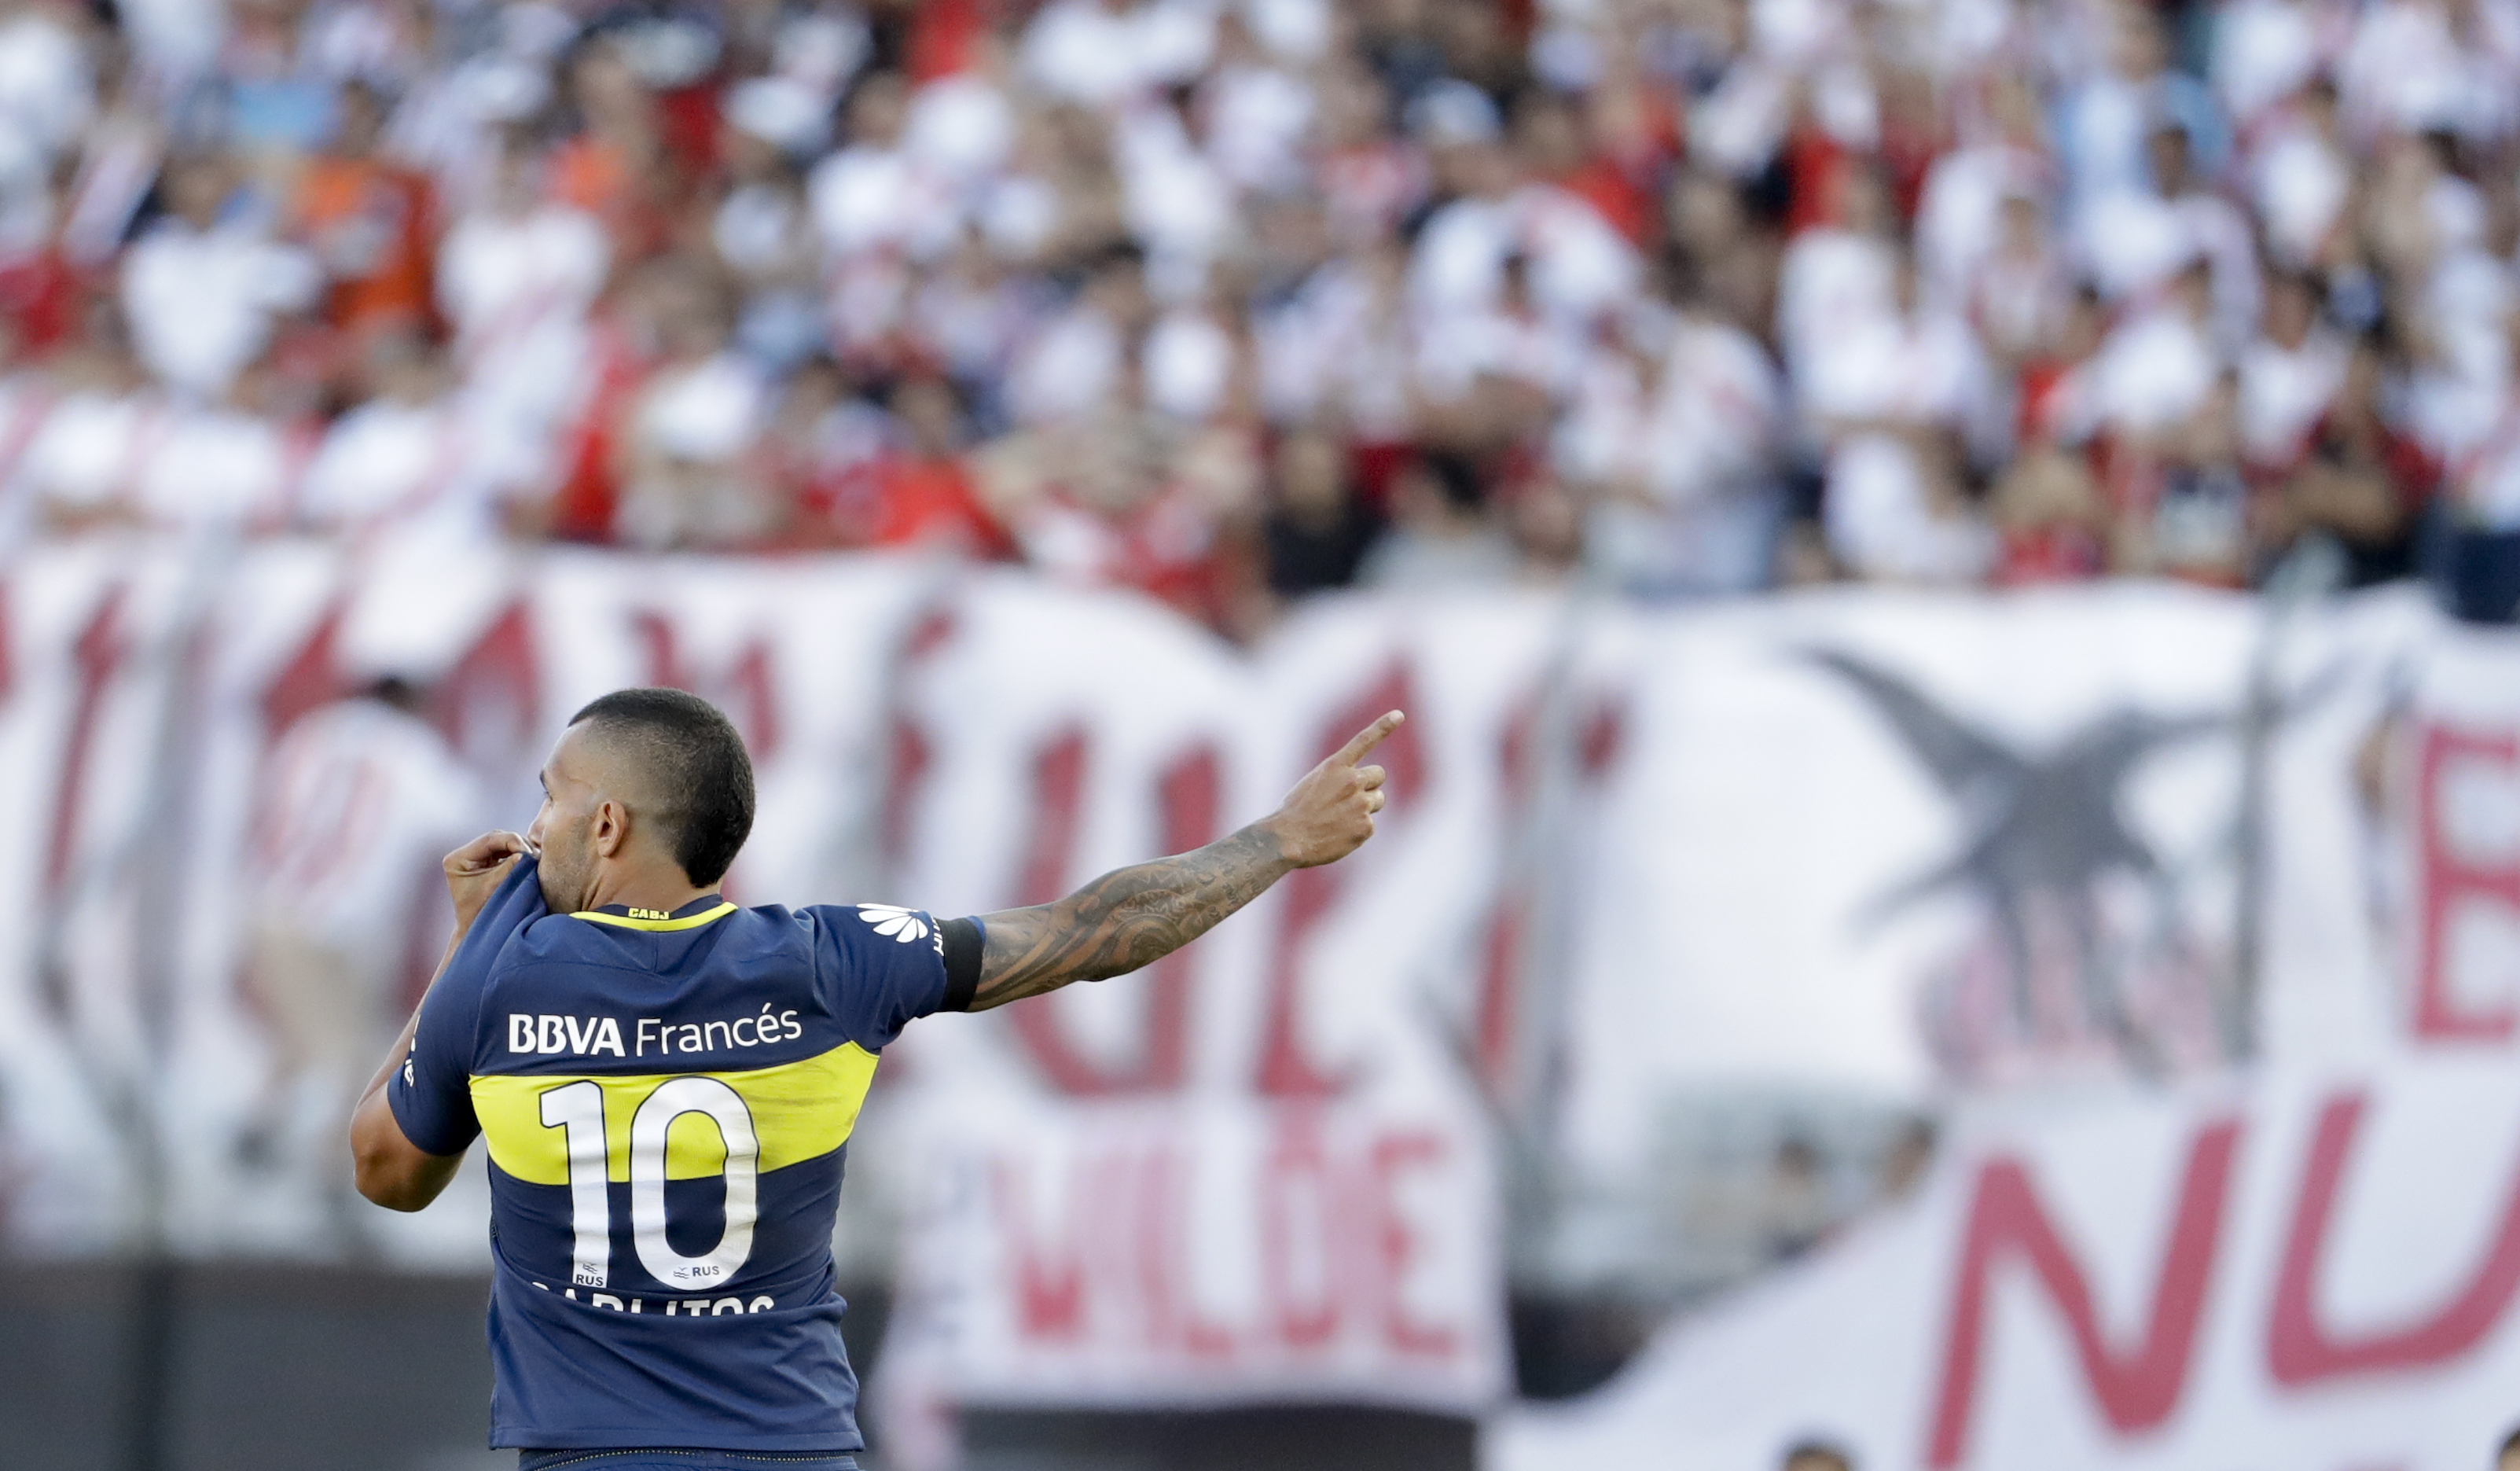 Former Manchester United, City star Carlos Tevez returns to Boca Juniors